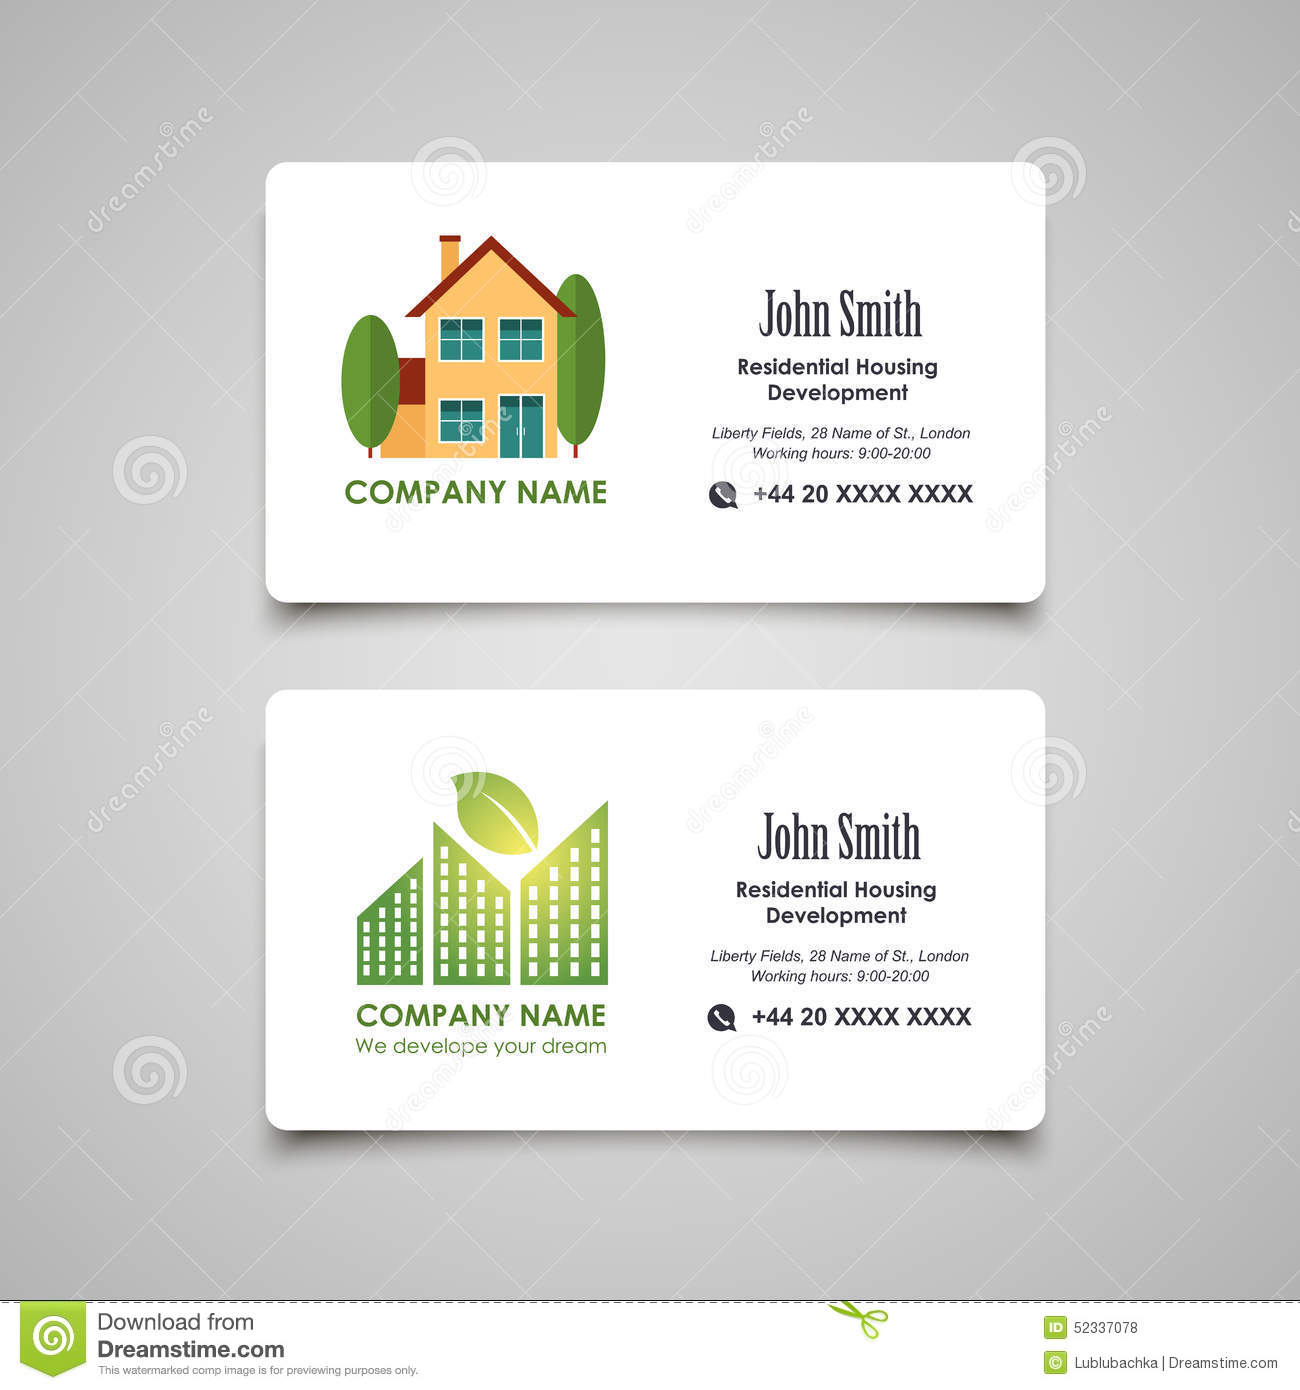 Architecture Developing Business Card Design Concept Royalty Free Stock Photos